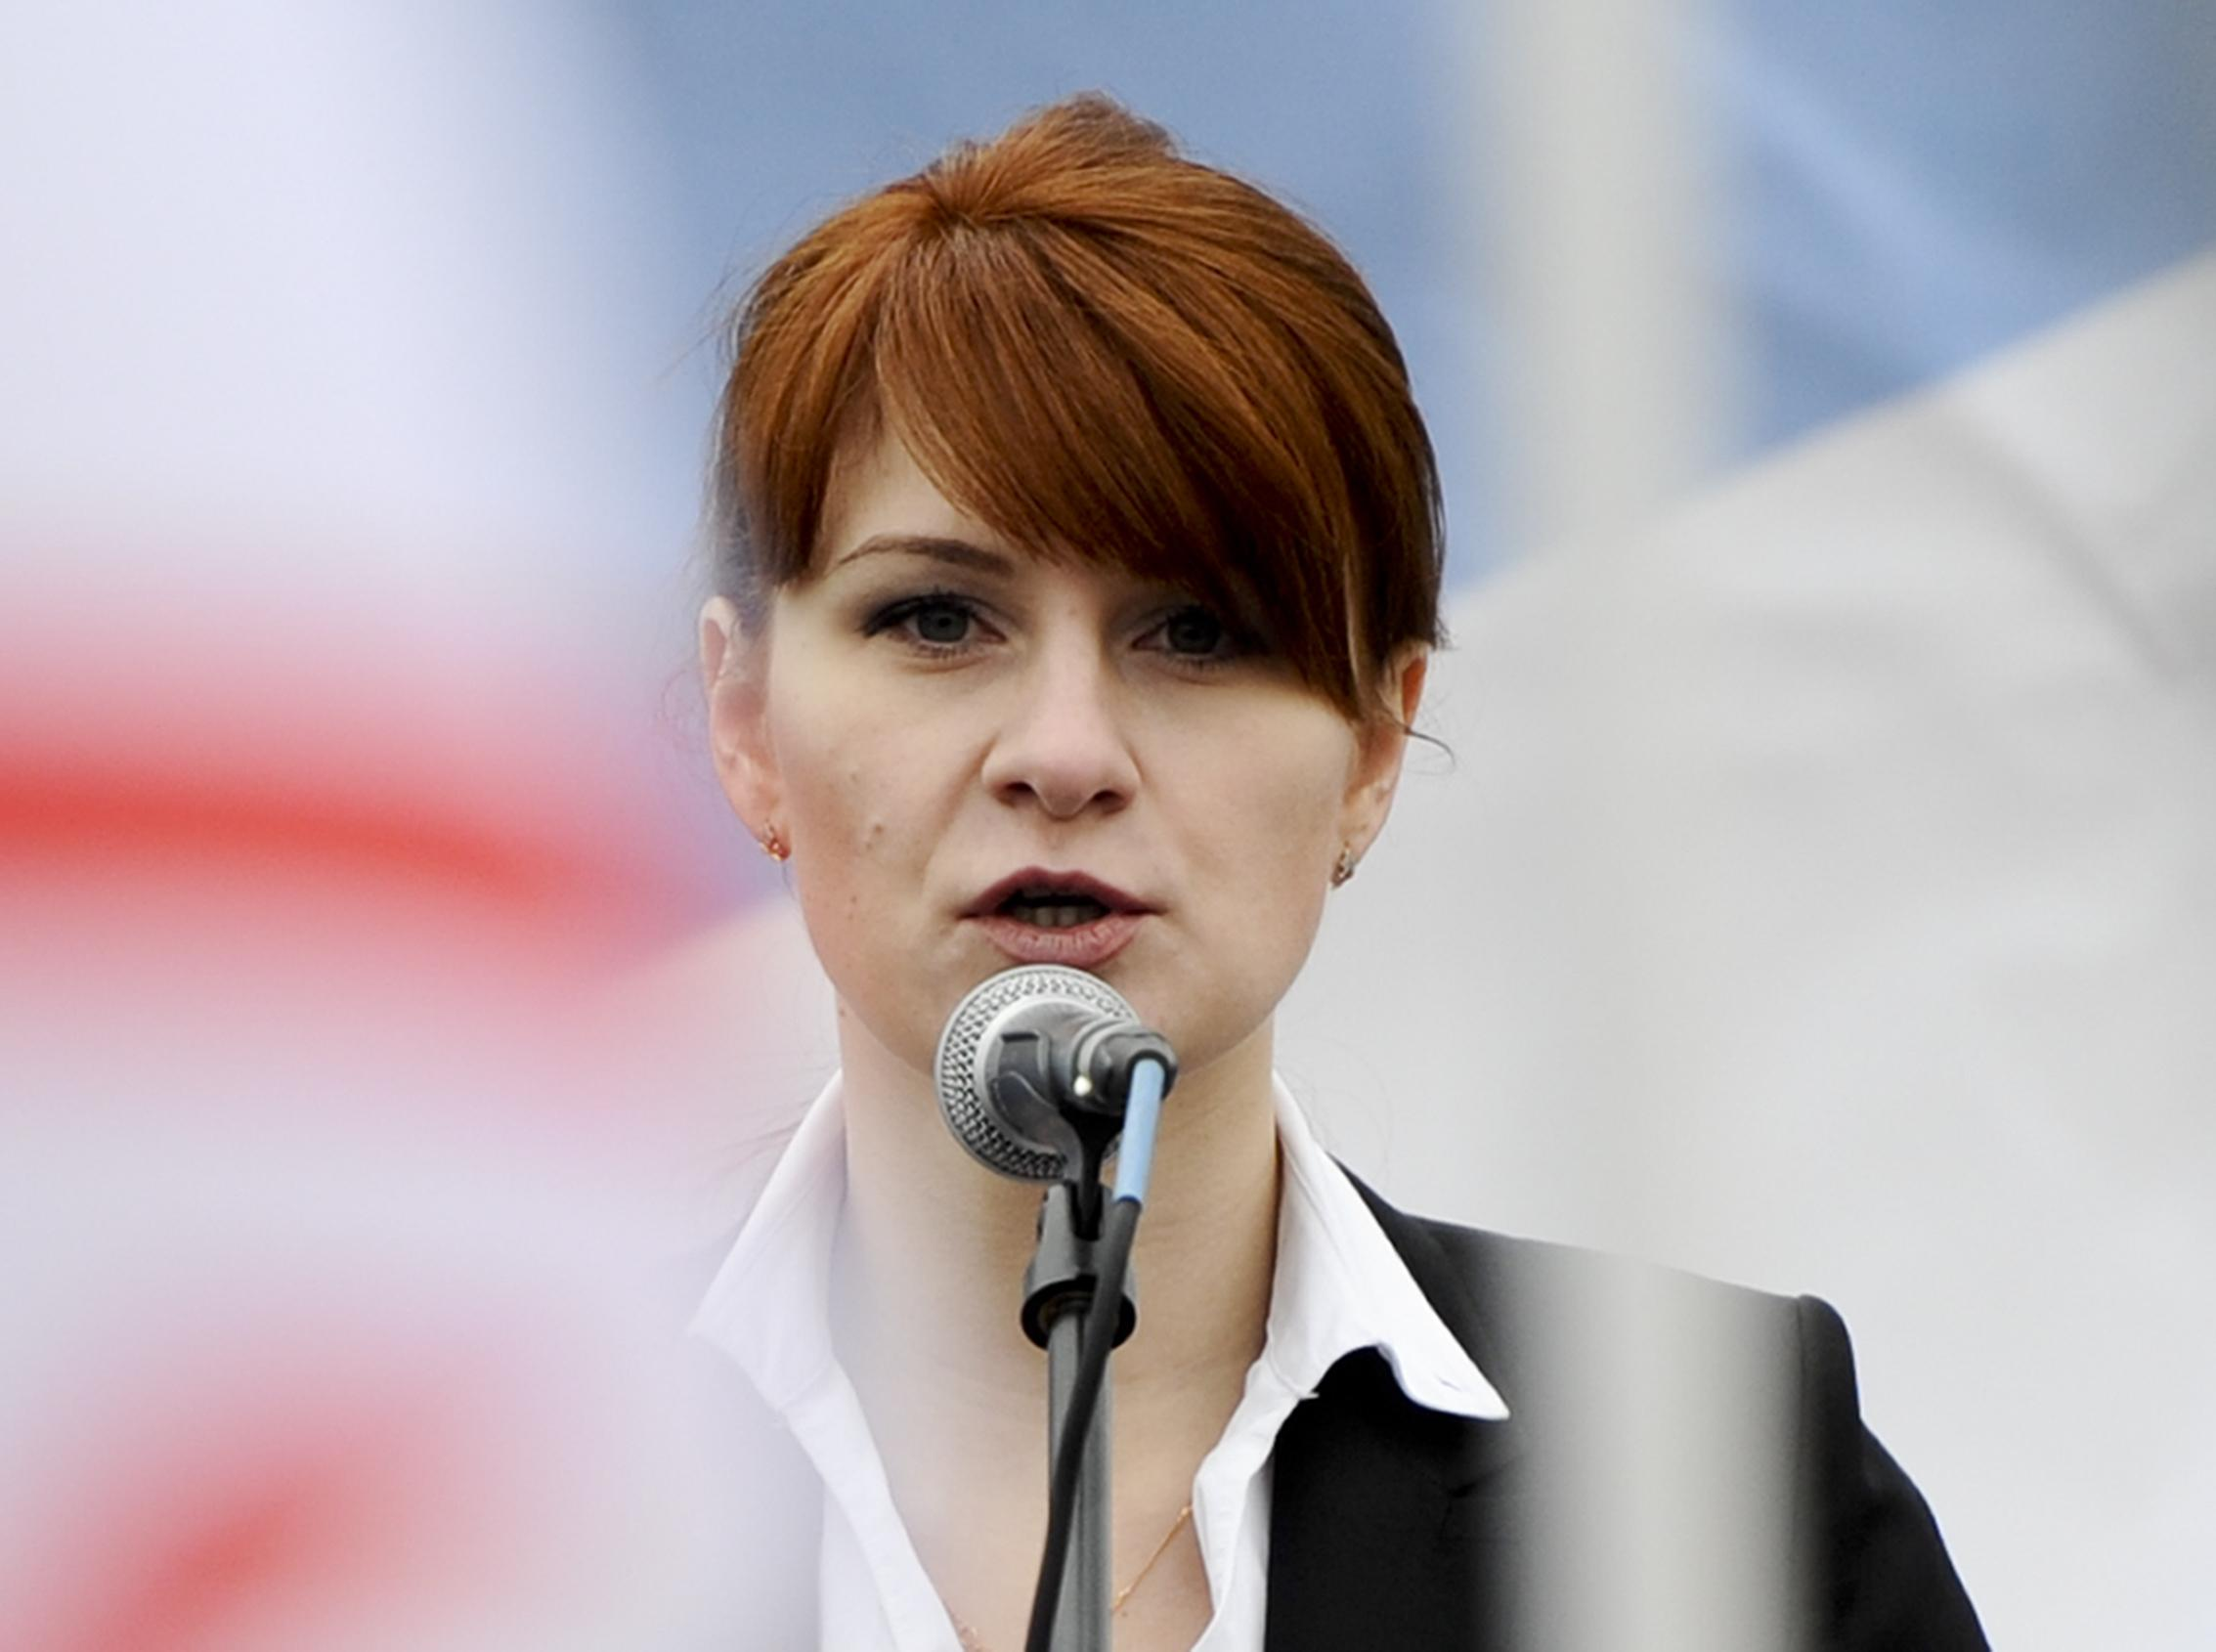 Russian embassy denounces Butina prison sentence as 'unlawful' in appeal to U.S. State Dept.